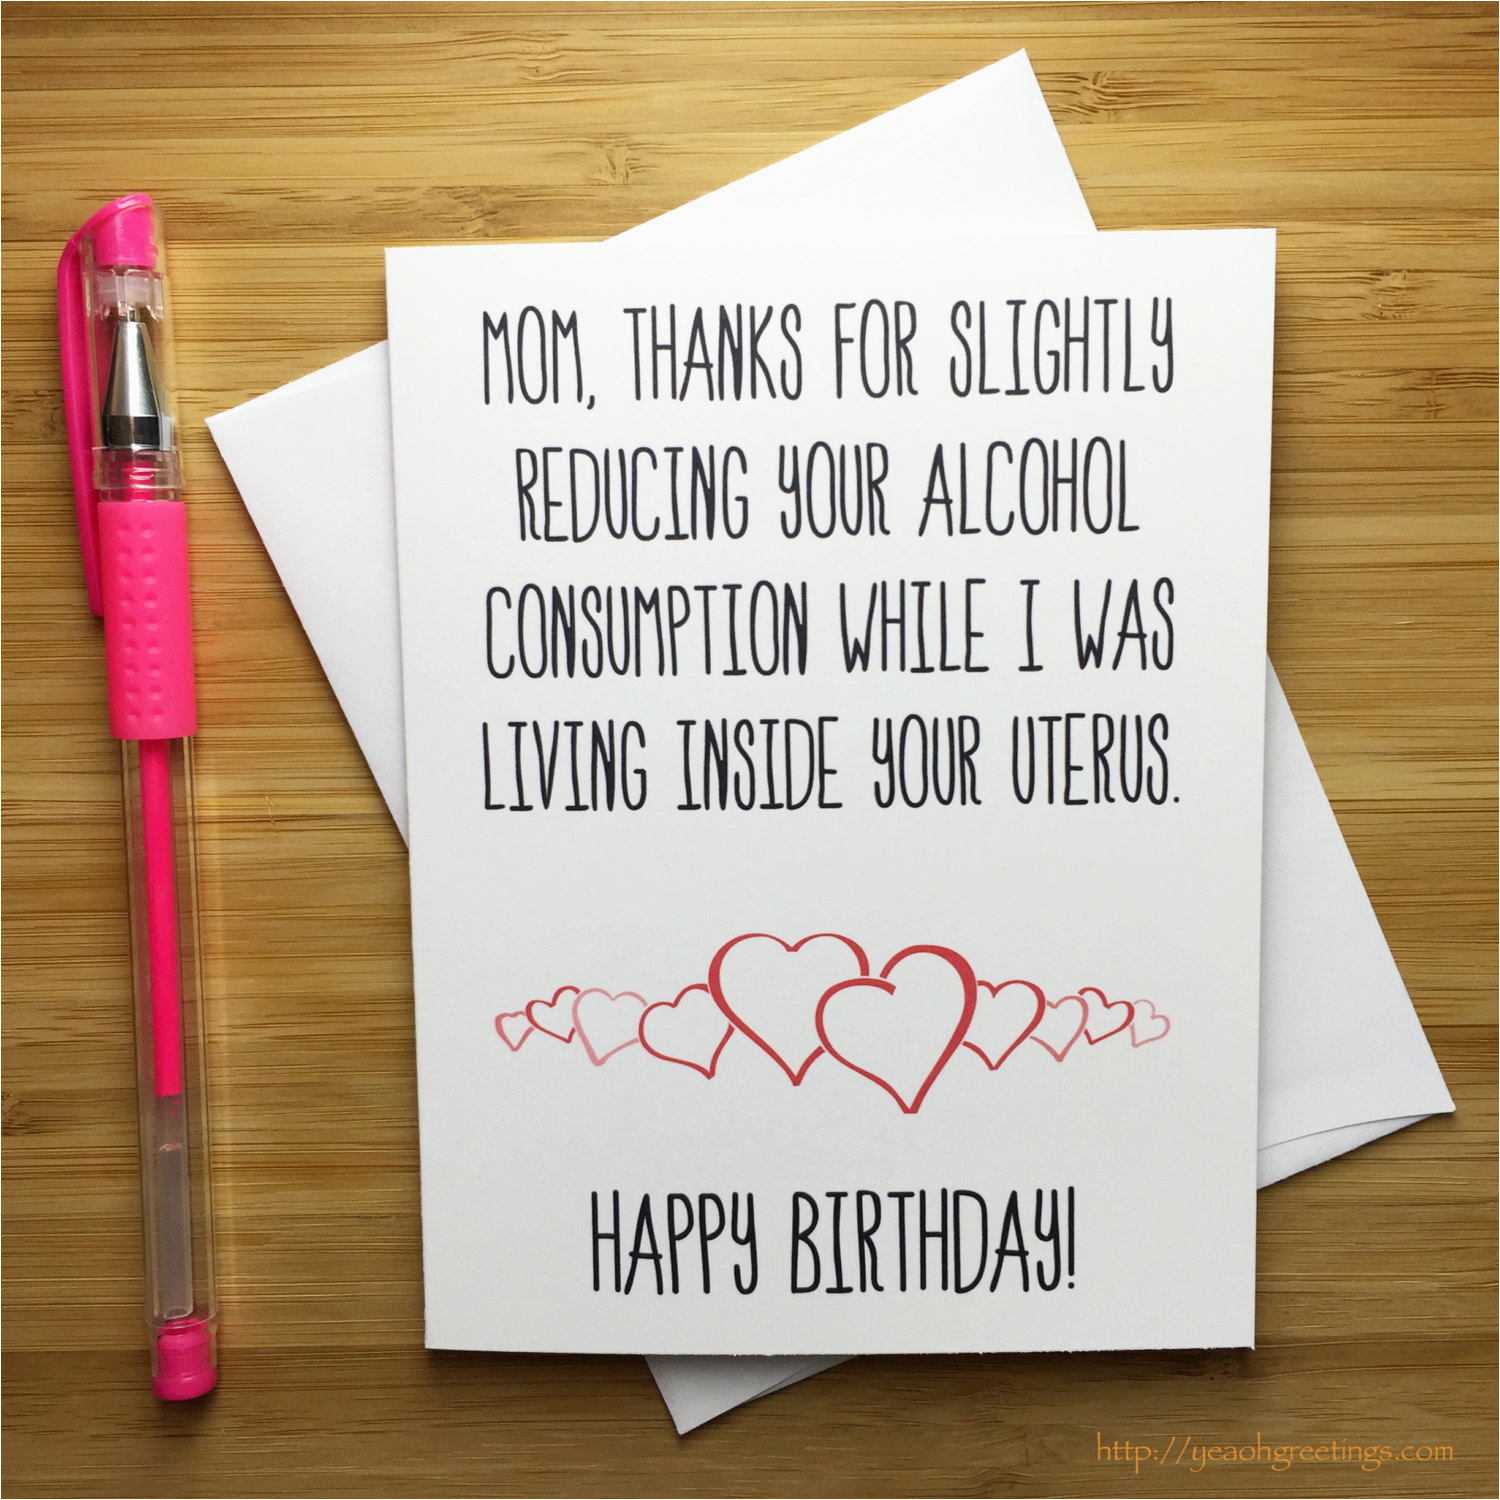 Funny Birthday Cards for Moms Mother Birthday Card Bday Card Mum Funny Birthday Card